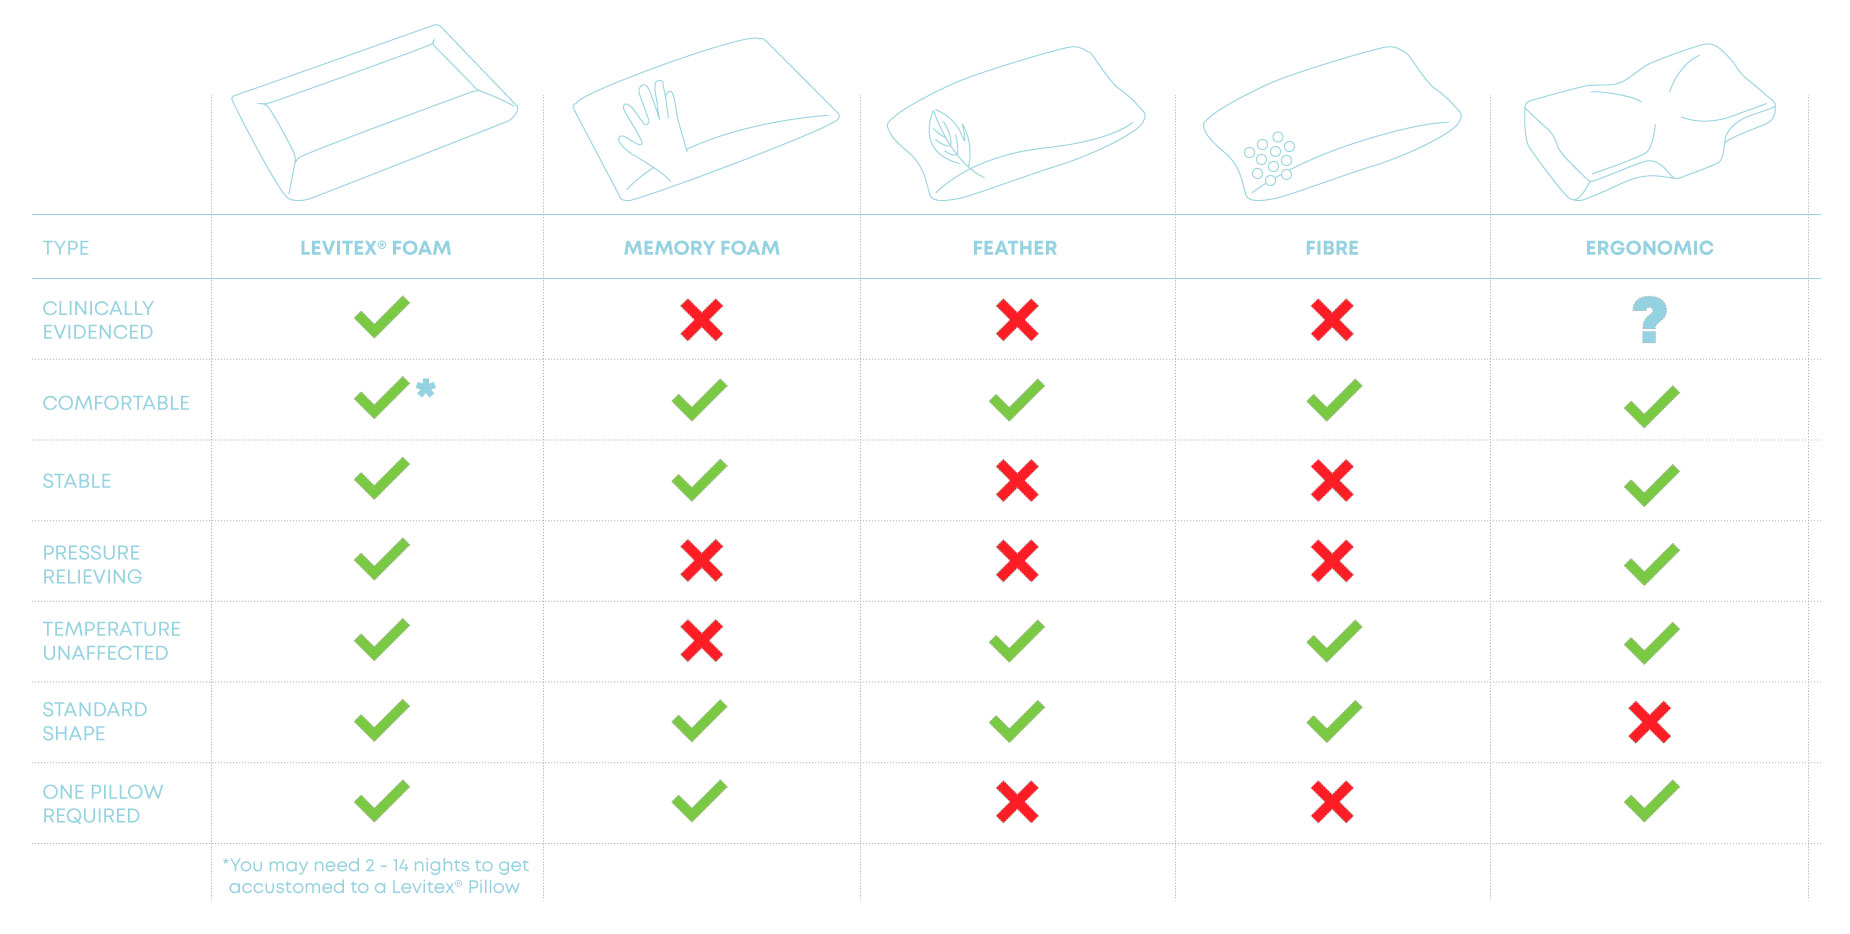 comparison of levitex vs other pillow types